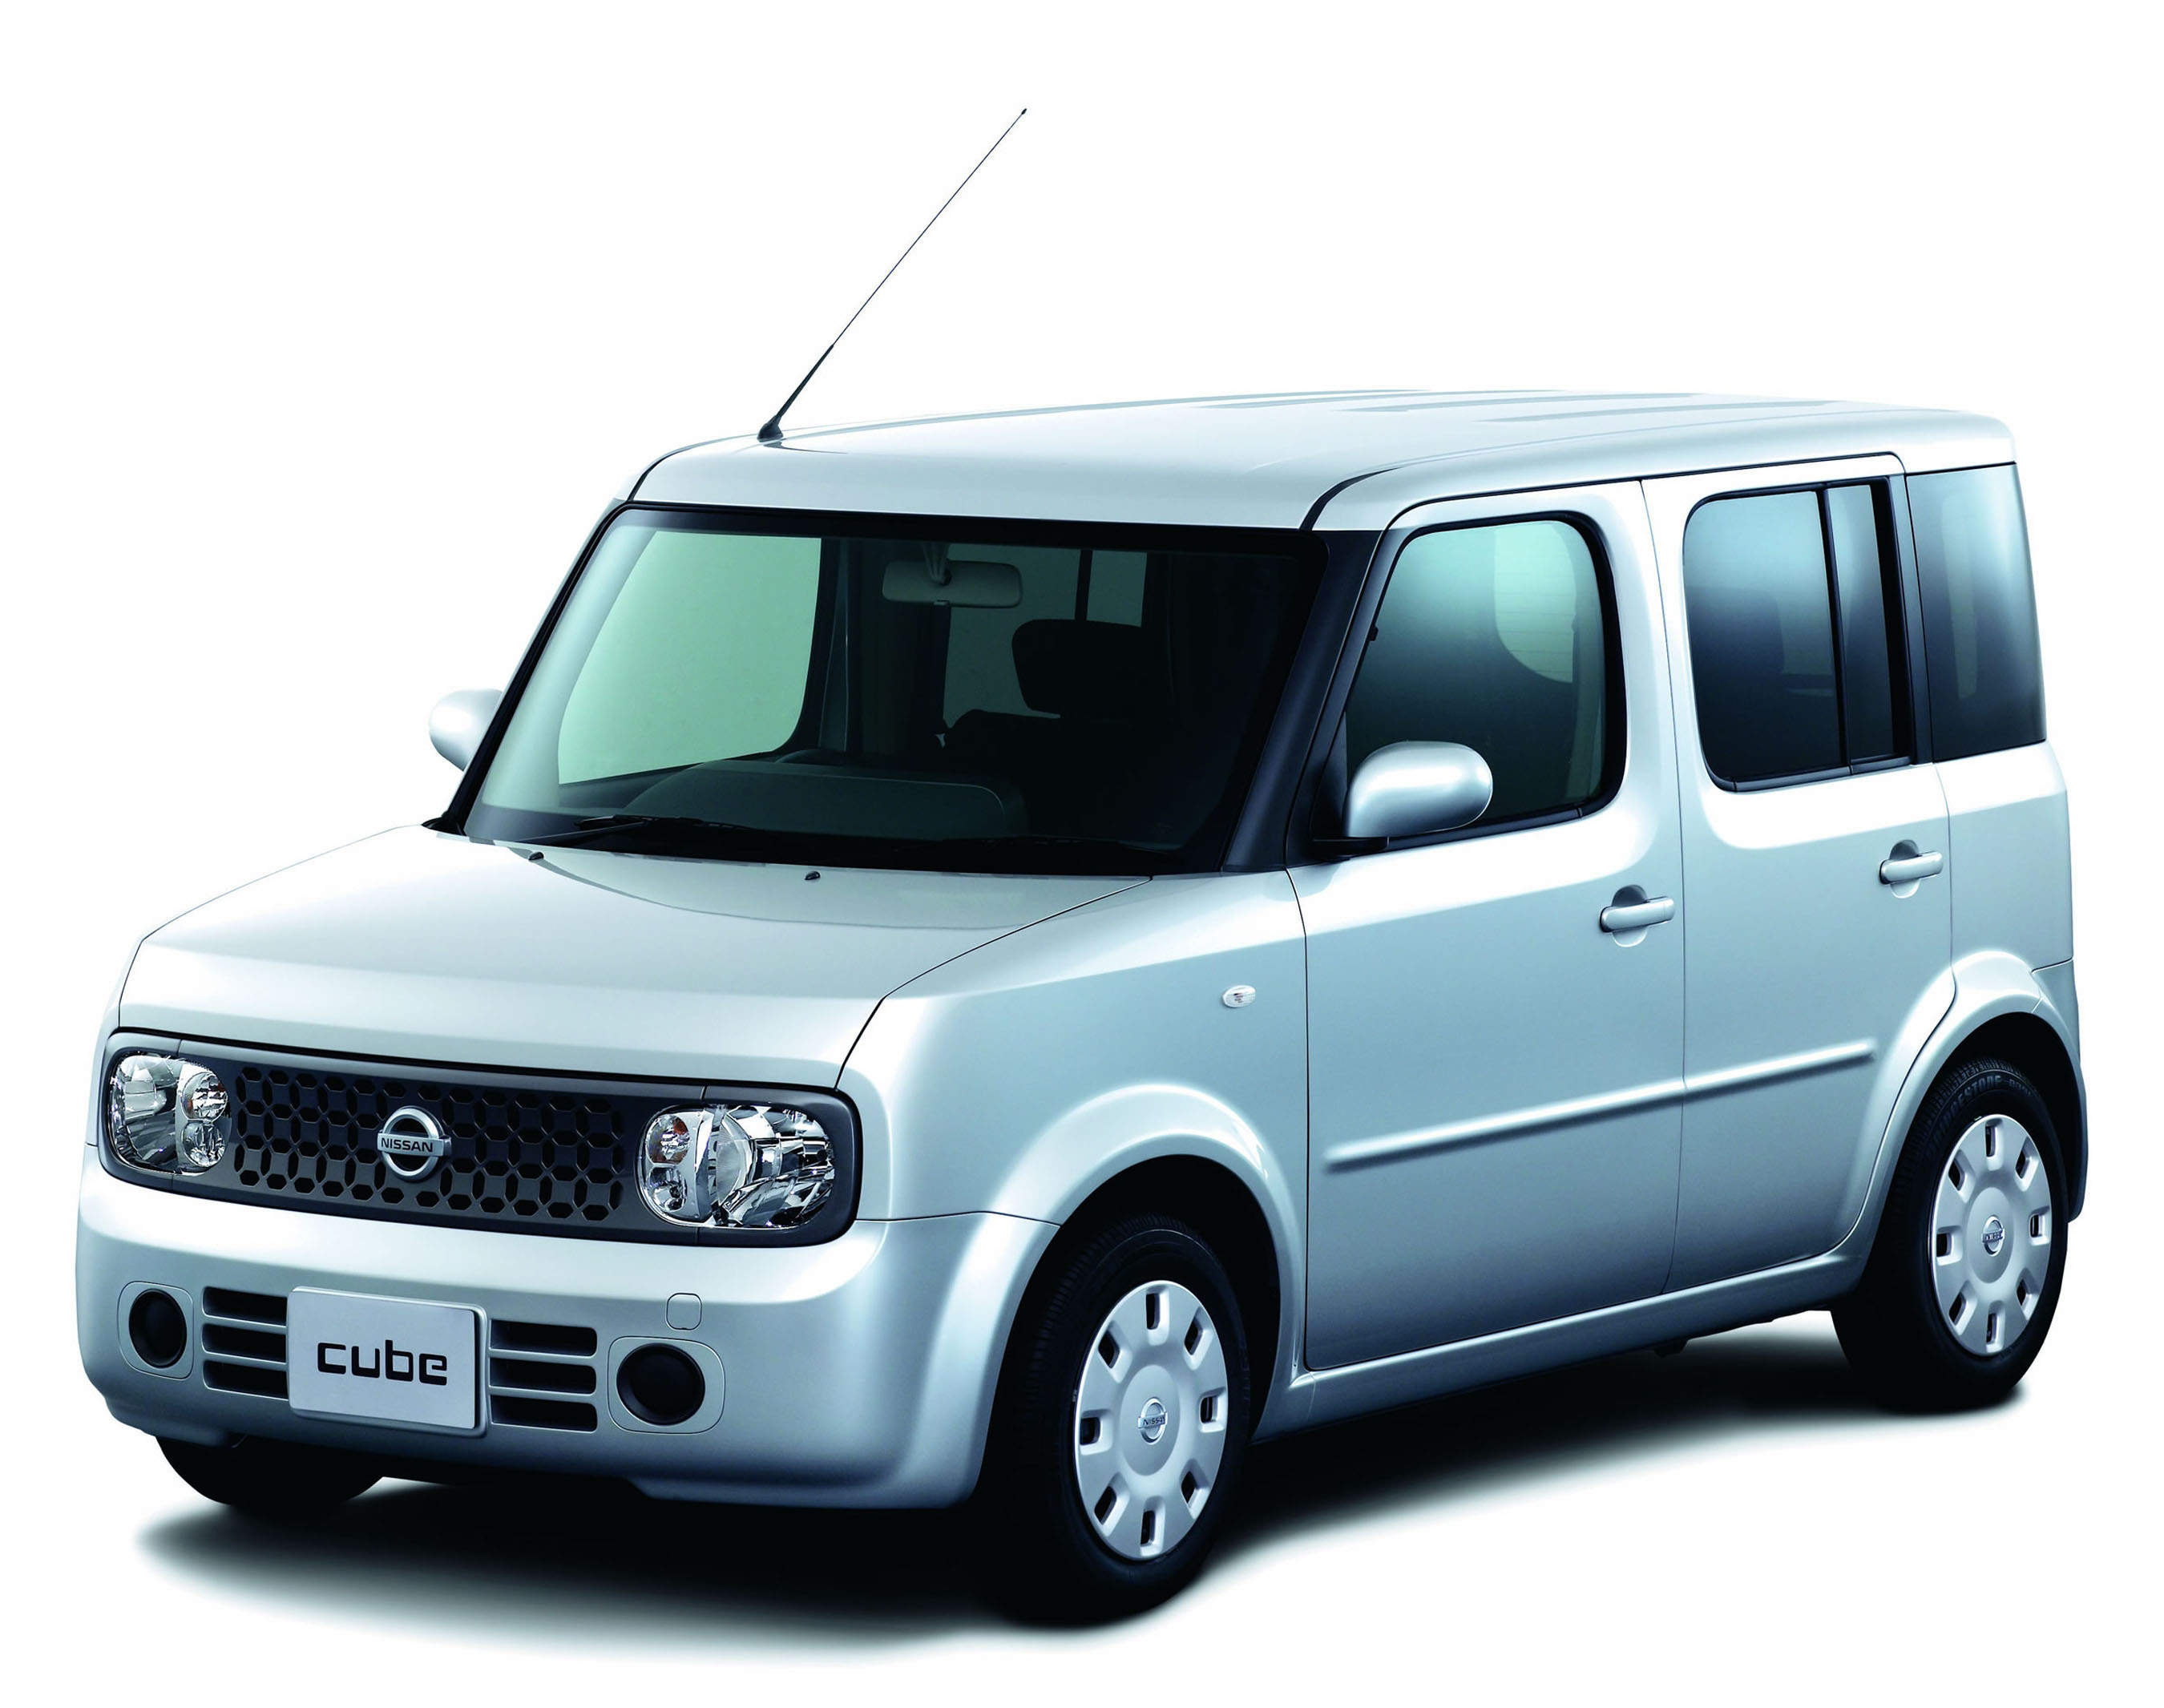 2016 nissan cube ii pictures information and specs auto. Black Bedroom Furniture Sets. Home Design Ideas